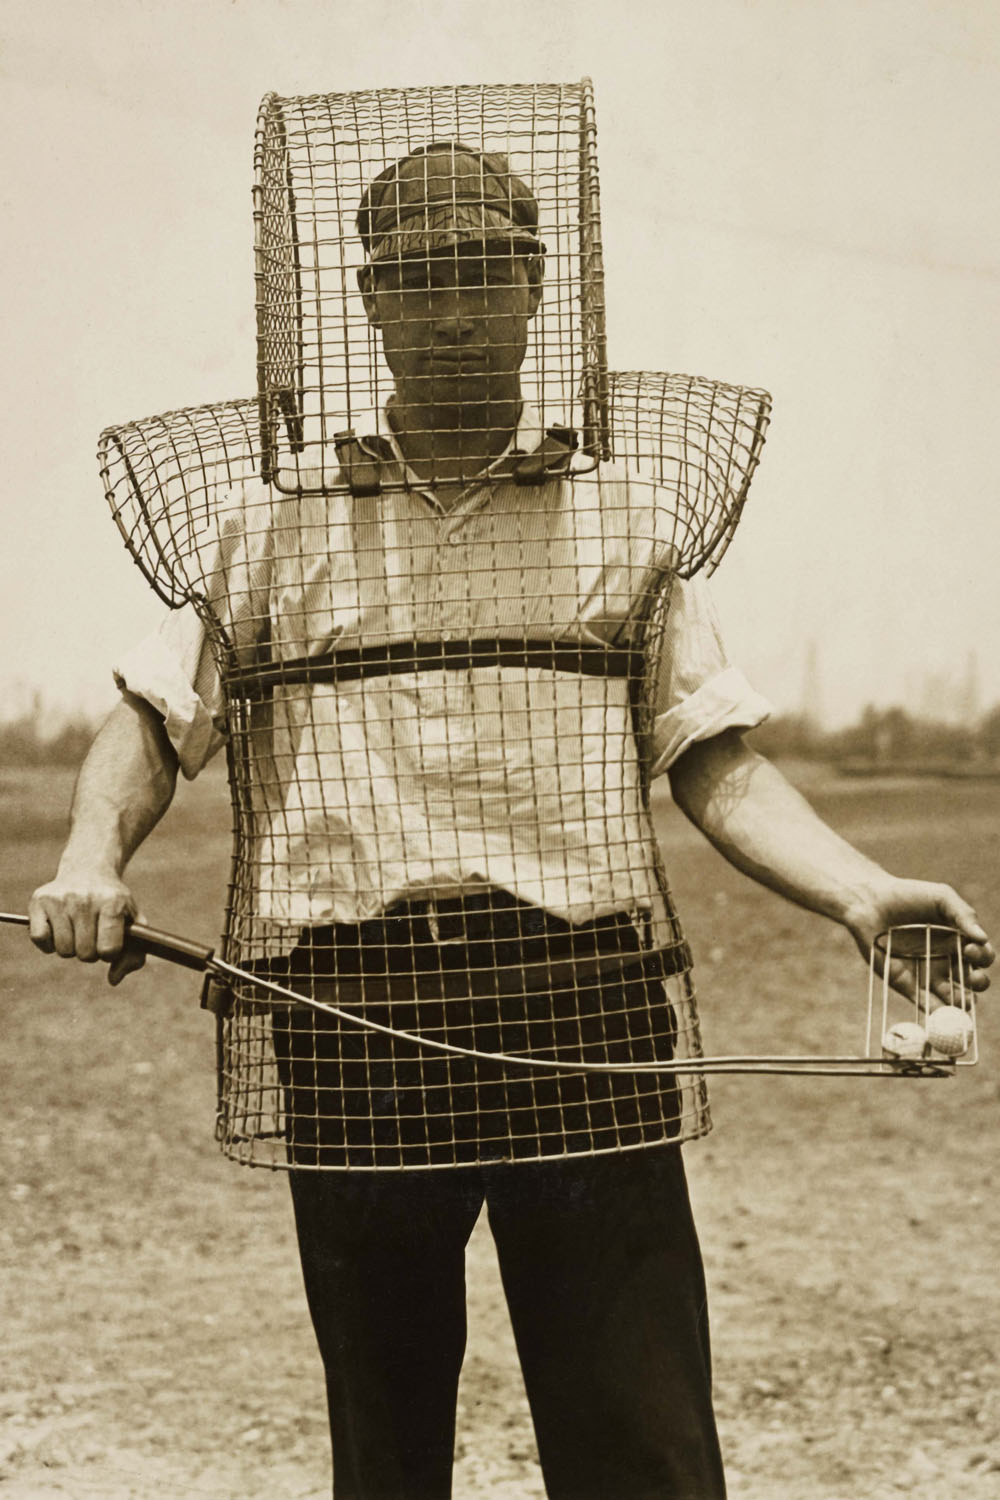 a man wearing a vintage cage-like solution for protection from golf balls